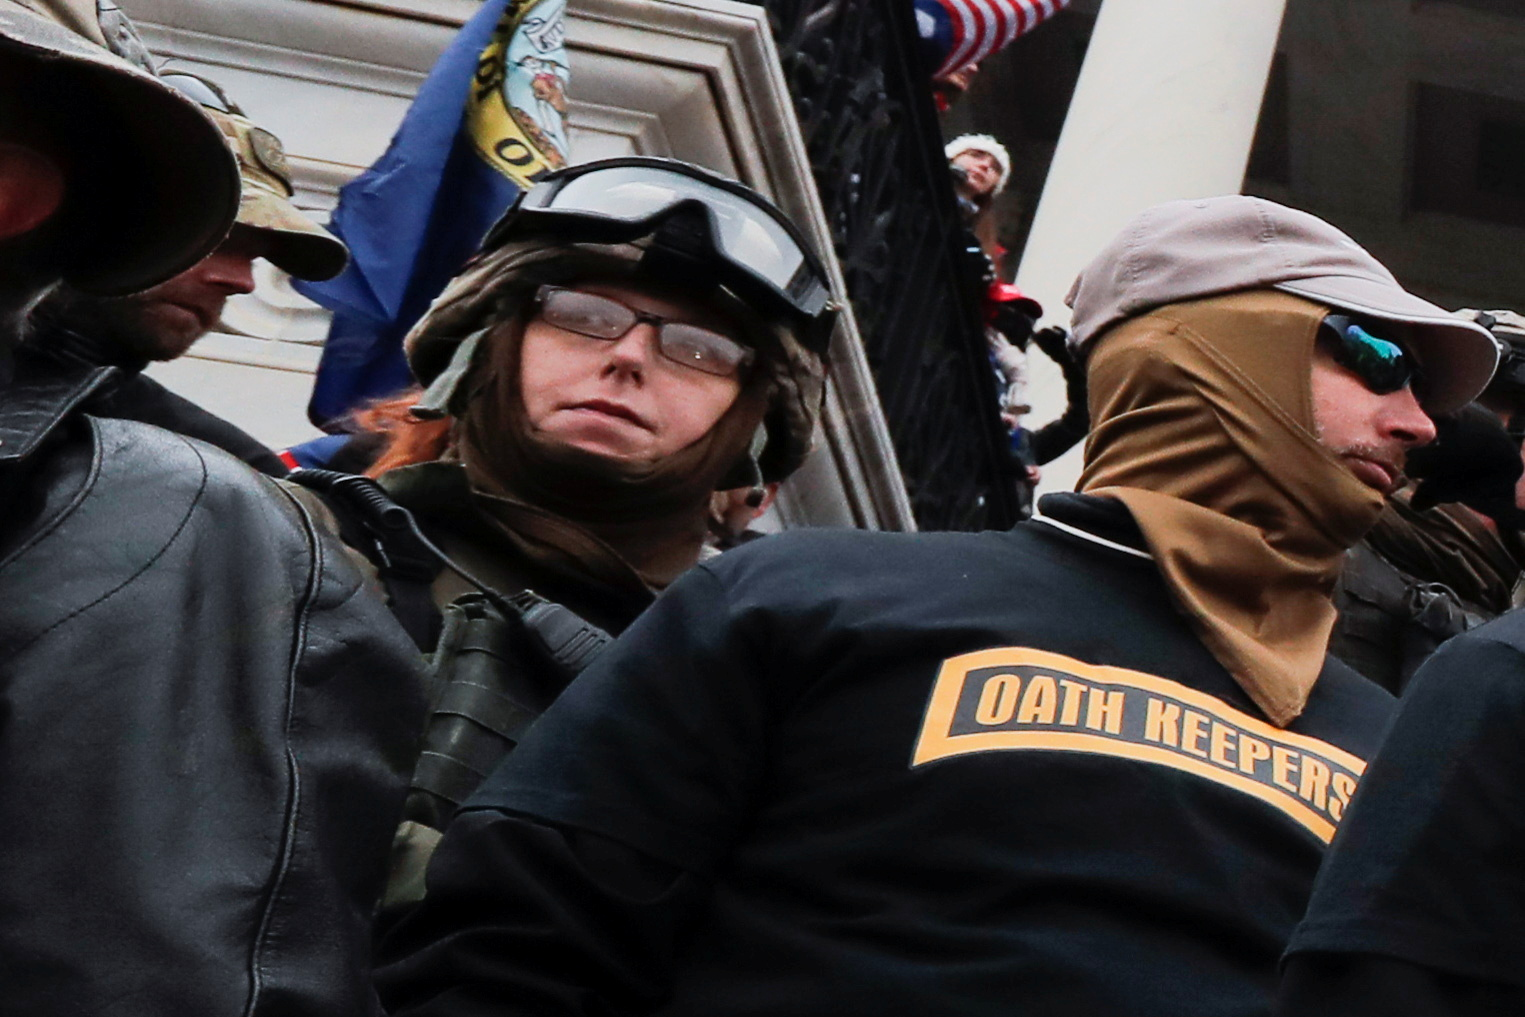 Members of the Oath Keepers militia group stand among supporters of former President Trump on the east front steps of the U.S. Capitol in Washington, January 6, 2021. REUTERS/Jim Bourg